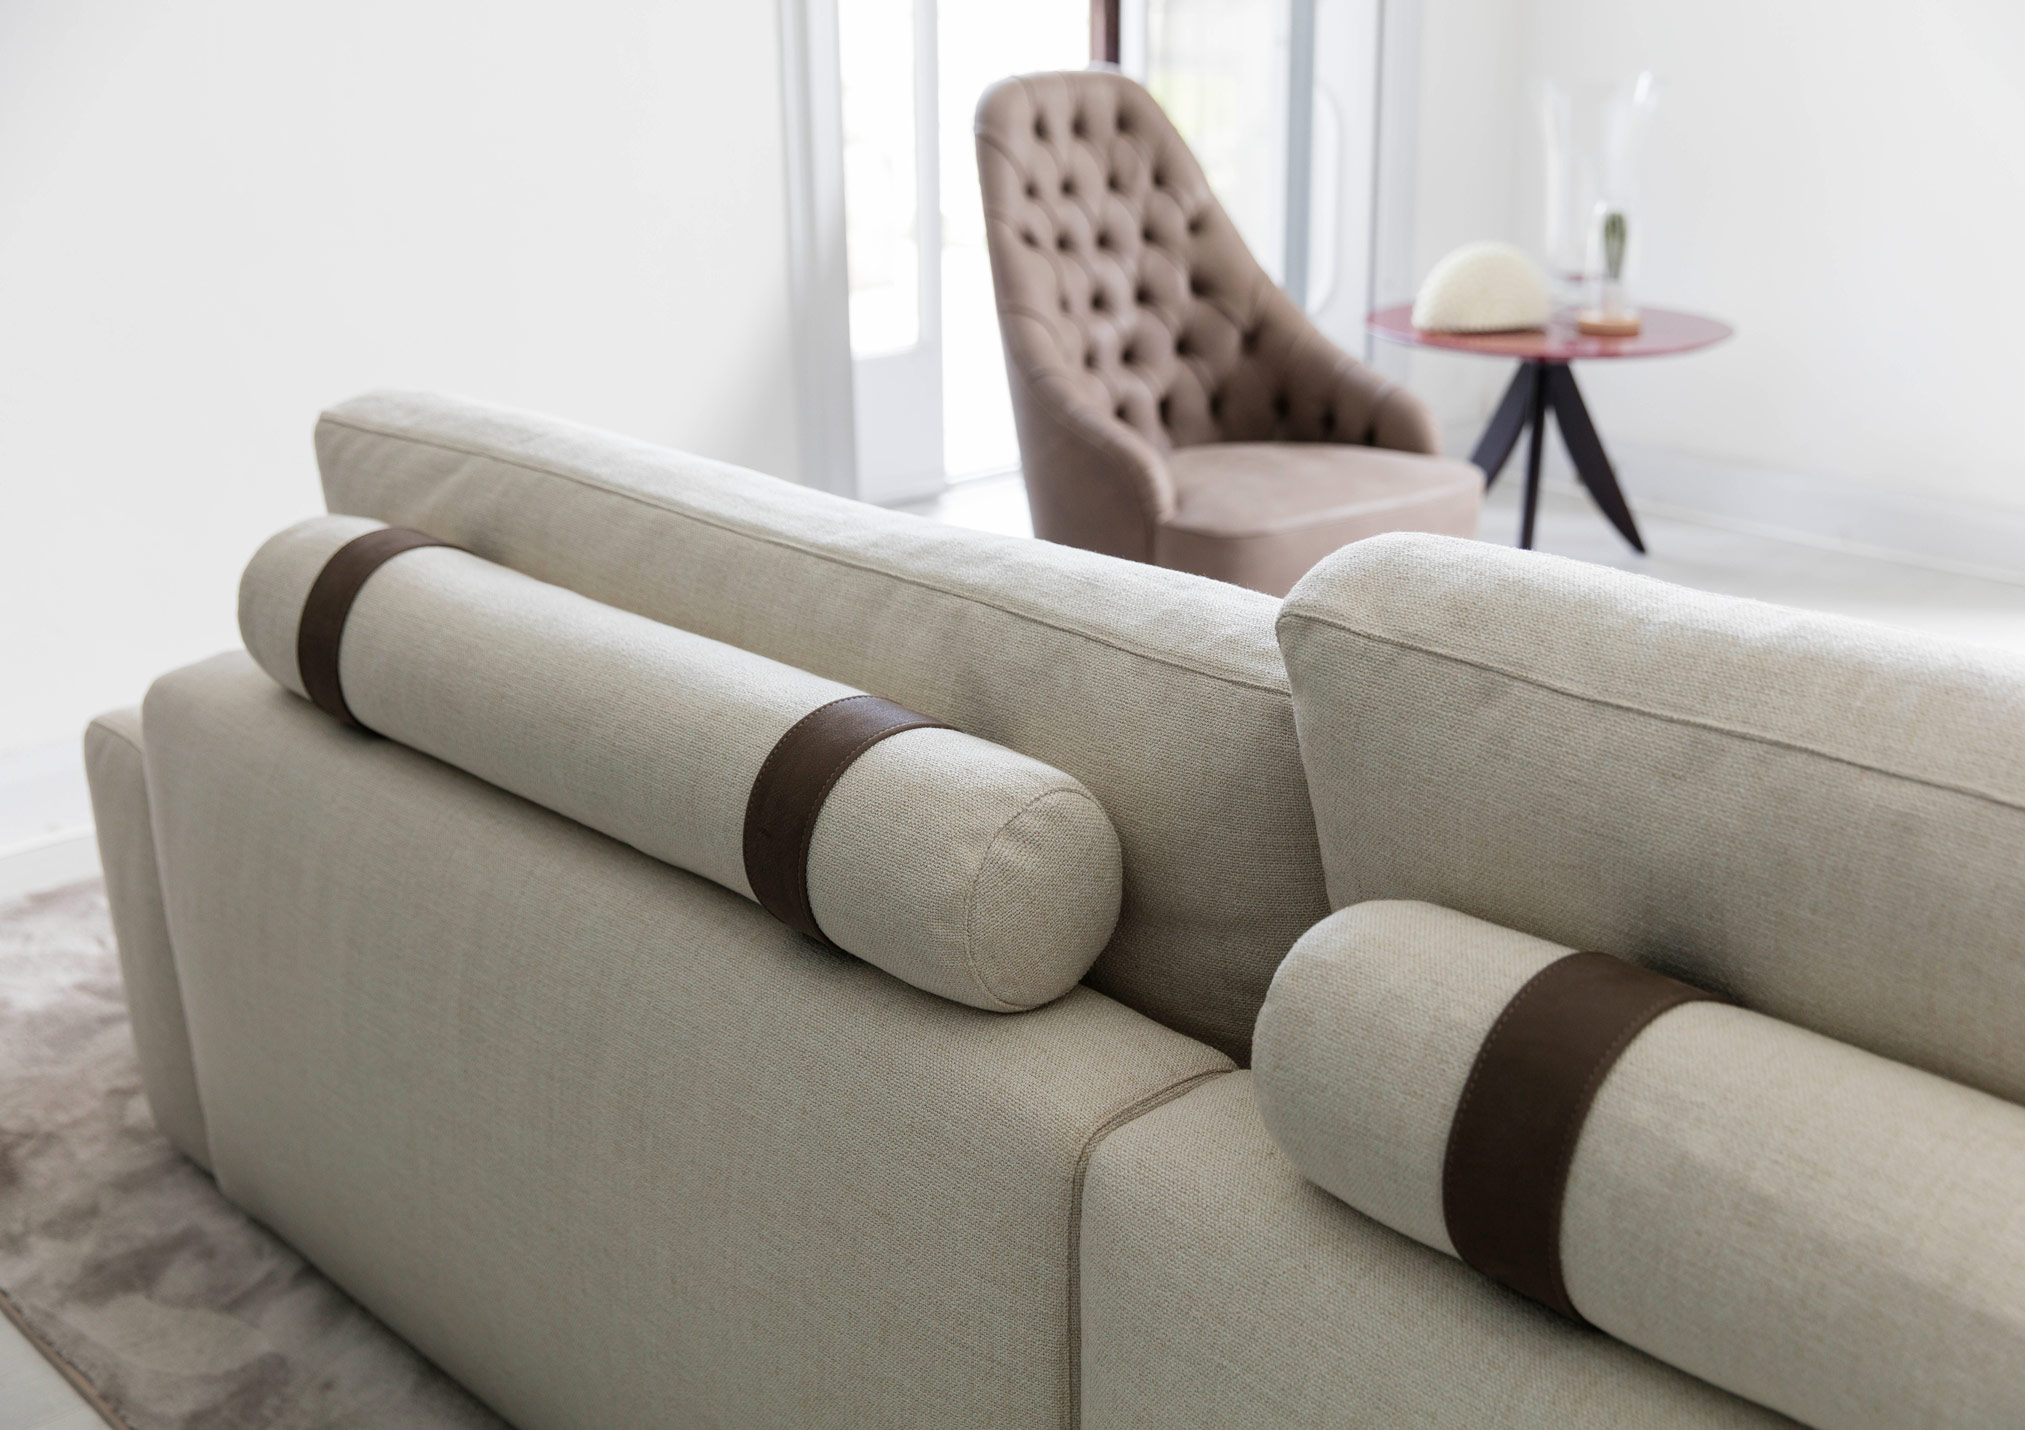 Joey sofa with low and high seatbacks